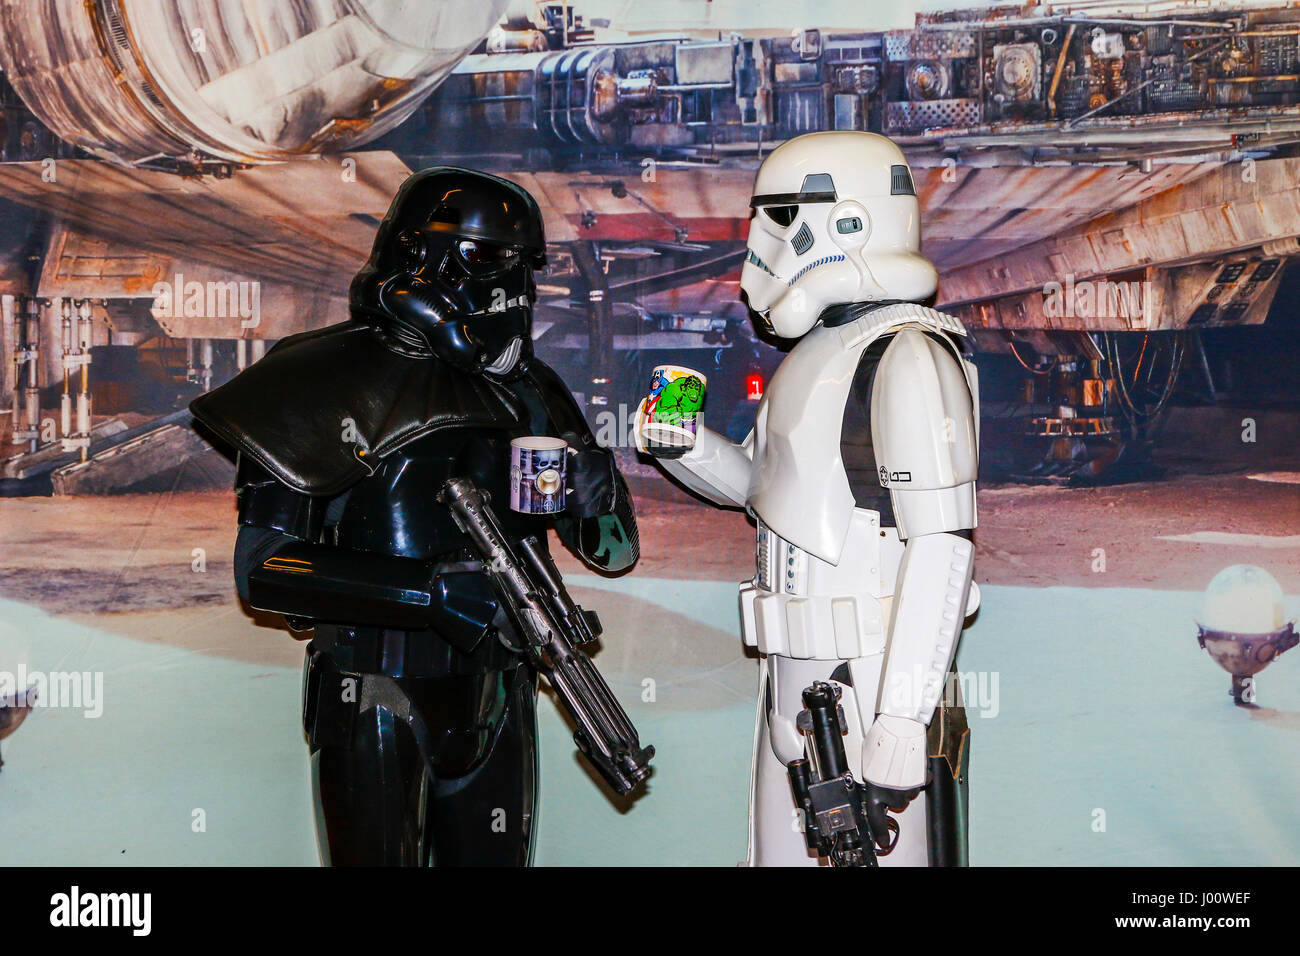 Glasgow, UK. 8th April, 2017. Glasgow held its first Sci-fi, Cosplay and Comic Convention in the famous Barrowland - Stock Image